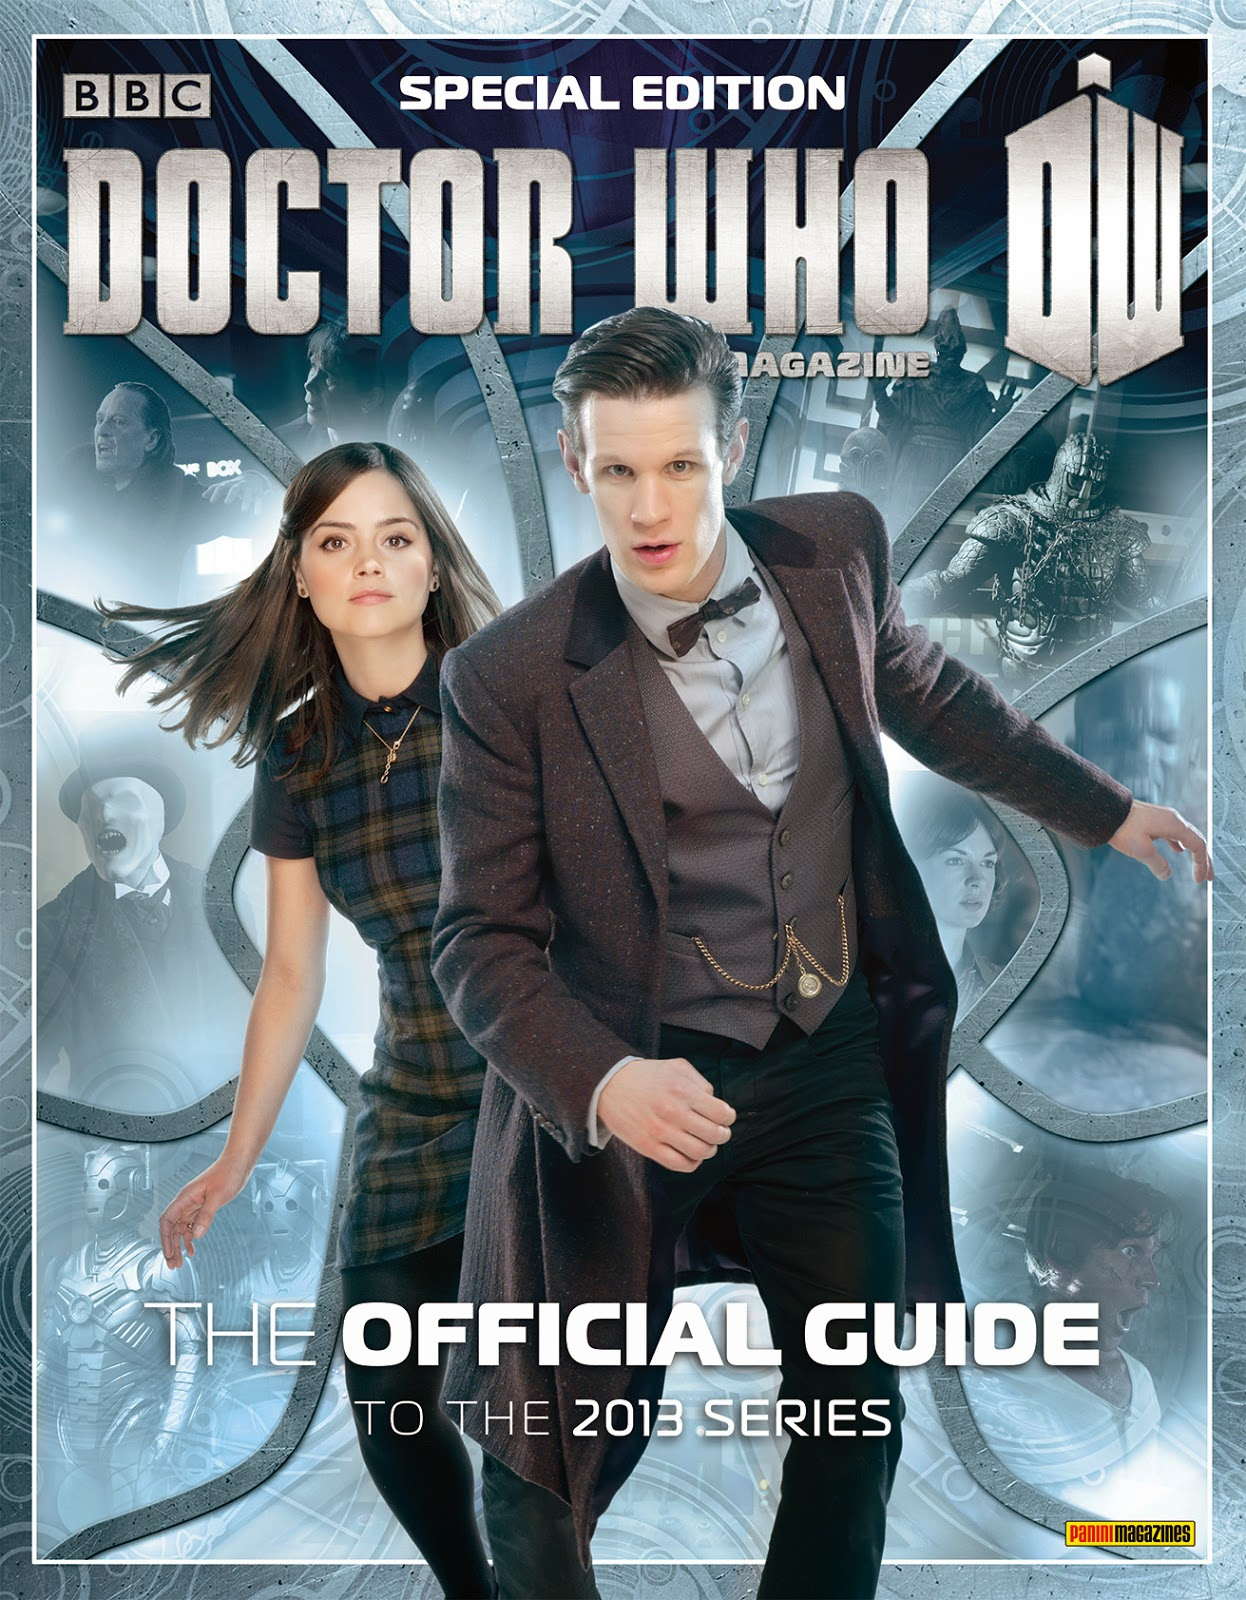 Dwm se official guide to 2013 series